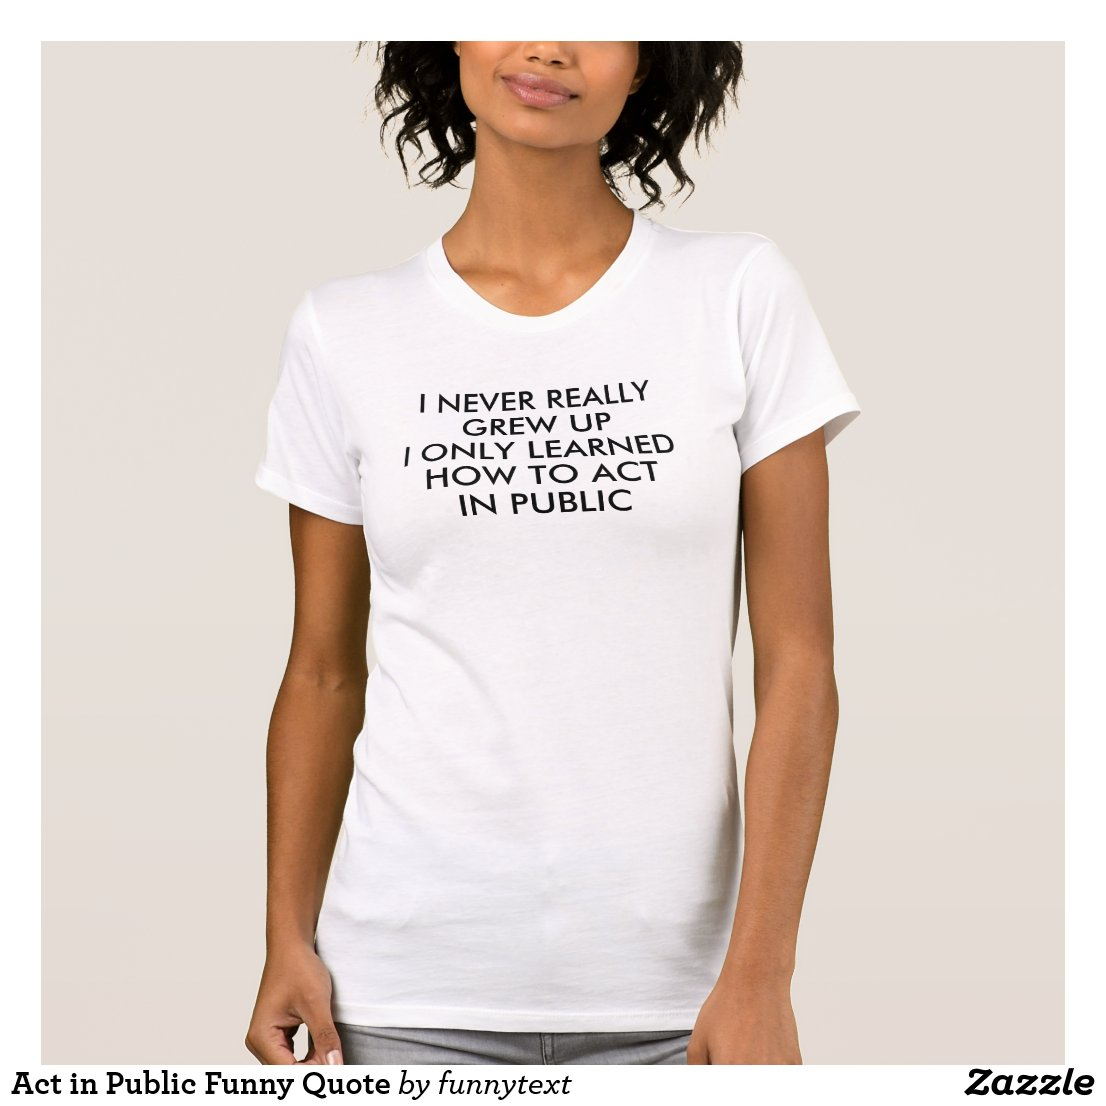 Act in Public Funny Quote T-Shirt